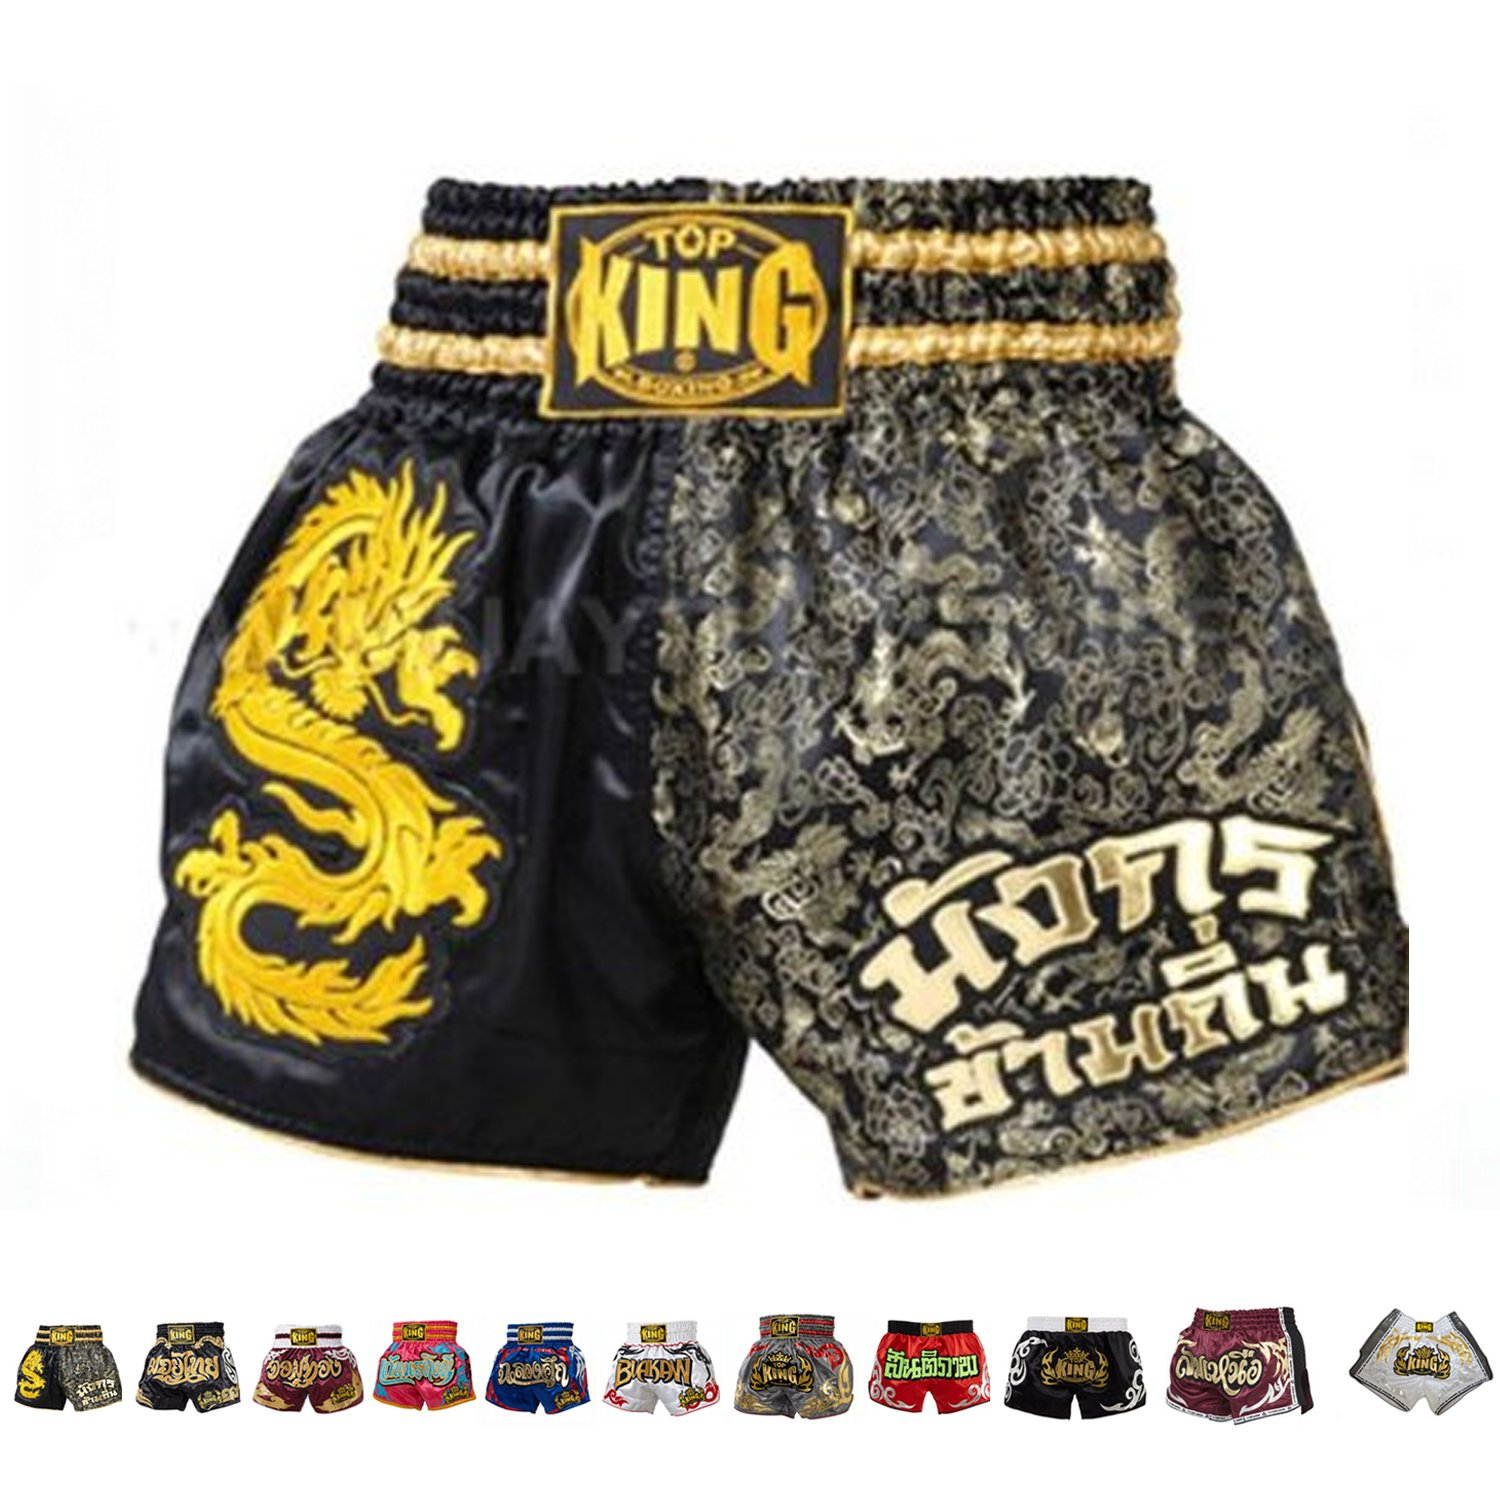 Black gold Dragon Small Top King Boxing Muay Thai Shorts Normal or Retro Style Size S, M, L, XL, 3L, 4L